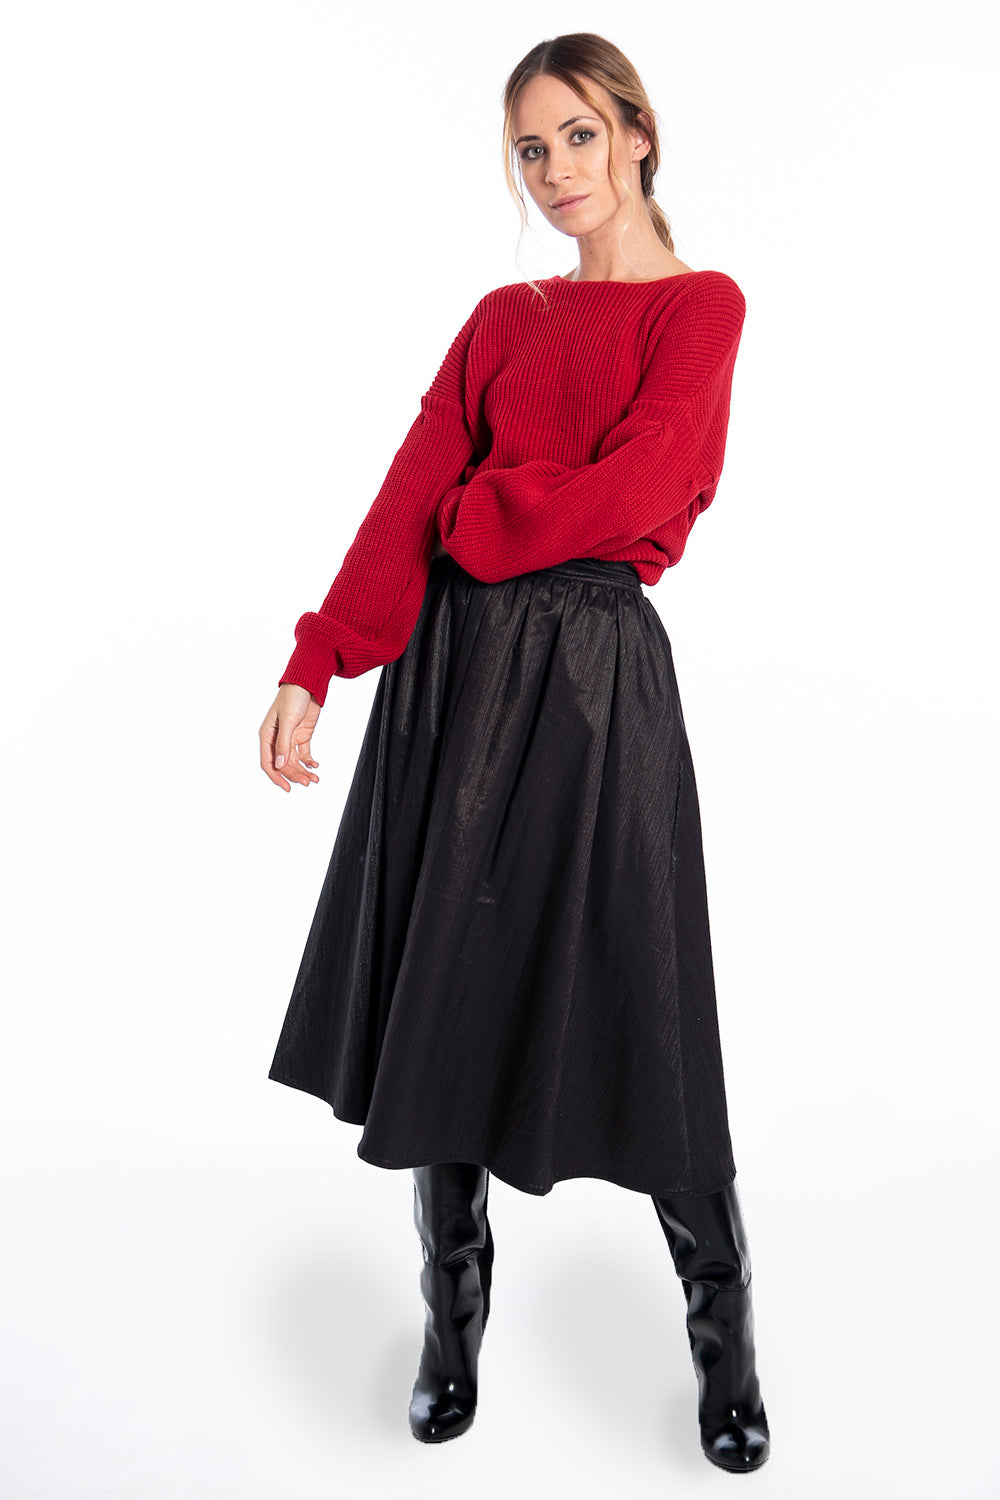 Patrizia Segreti textured fabric midi skirt with waistband